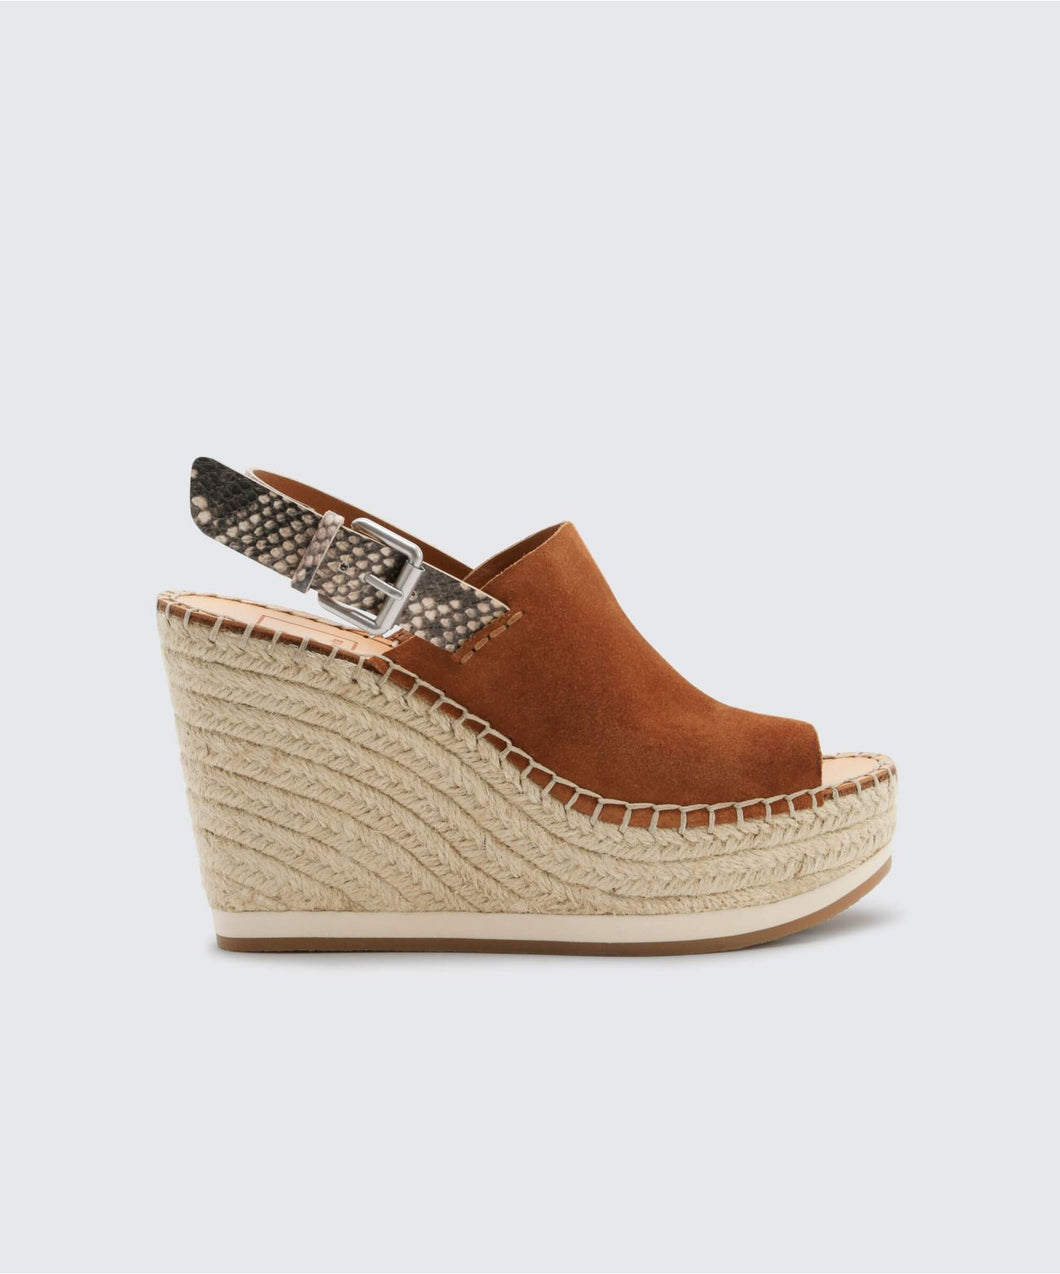 SHAN WEDGES IN SADDLE -   Dolce Vita